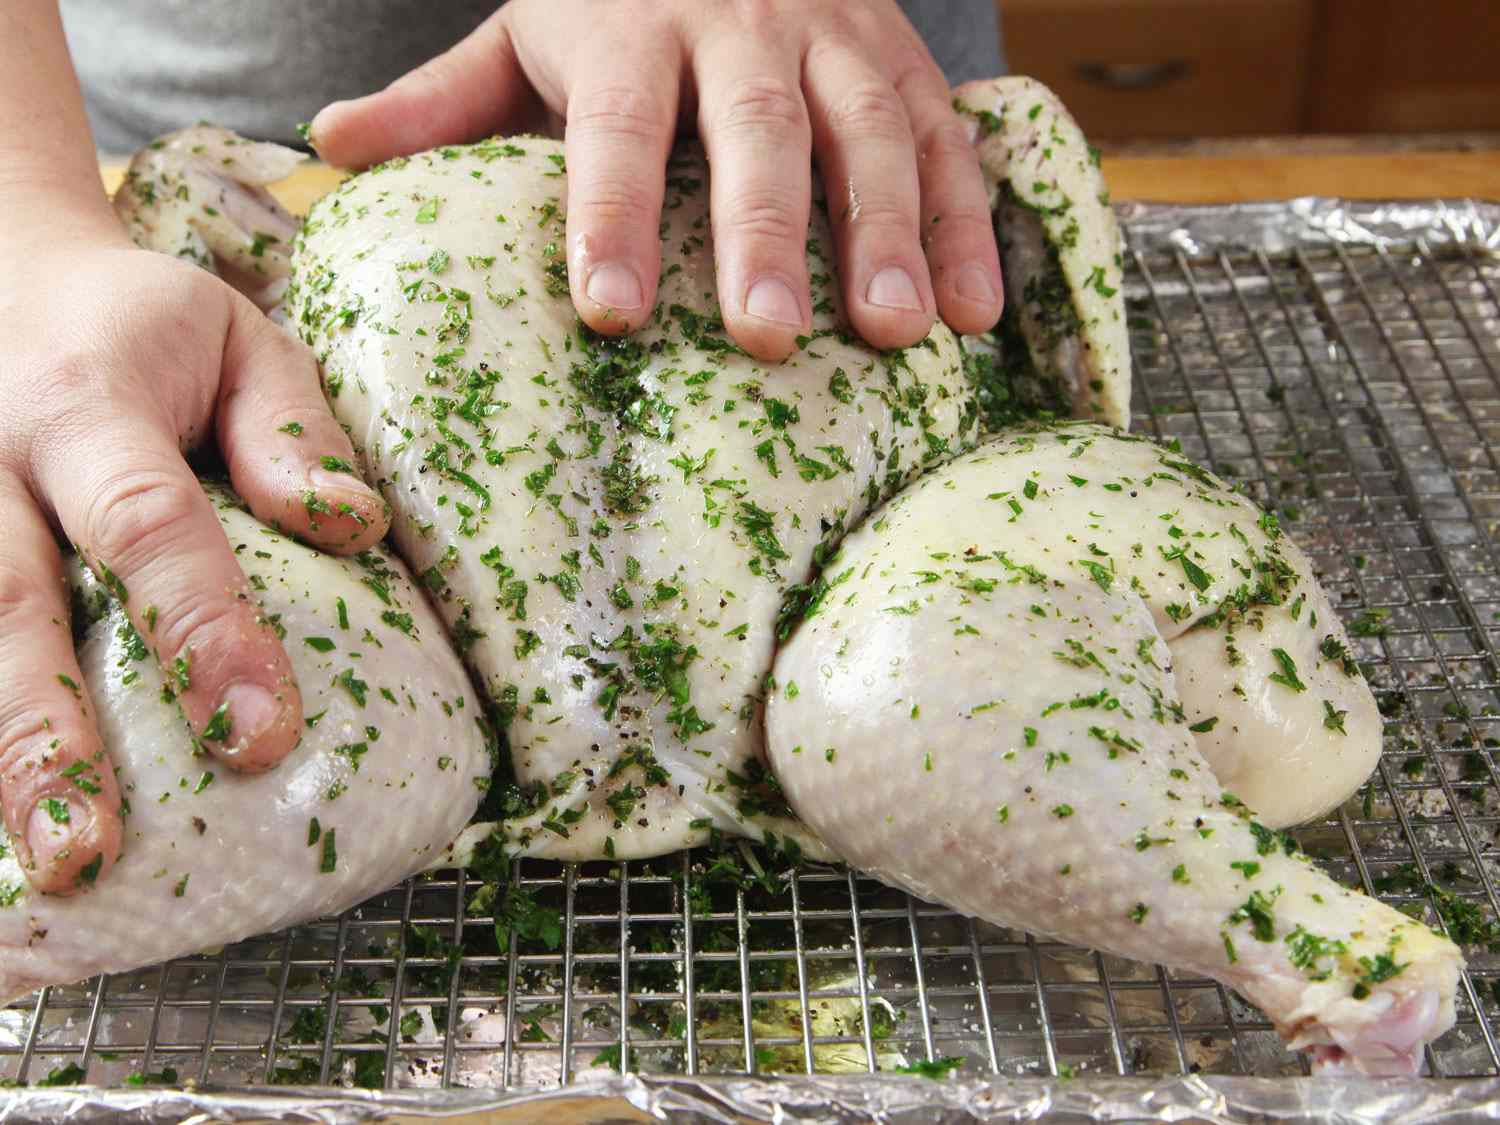 Spreading herbs on the skin of a raw spatchcocked chicken before roasting.